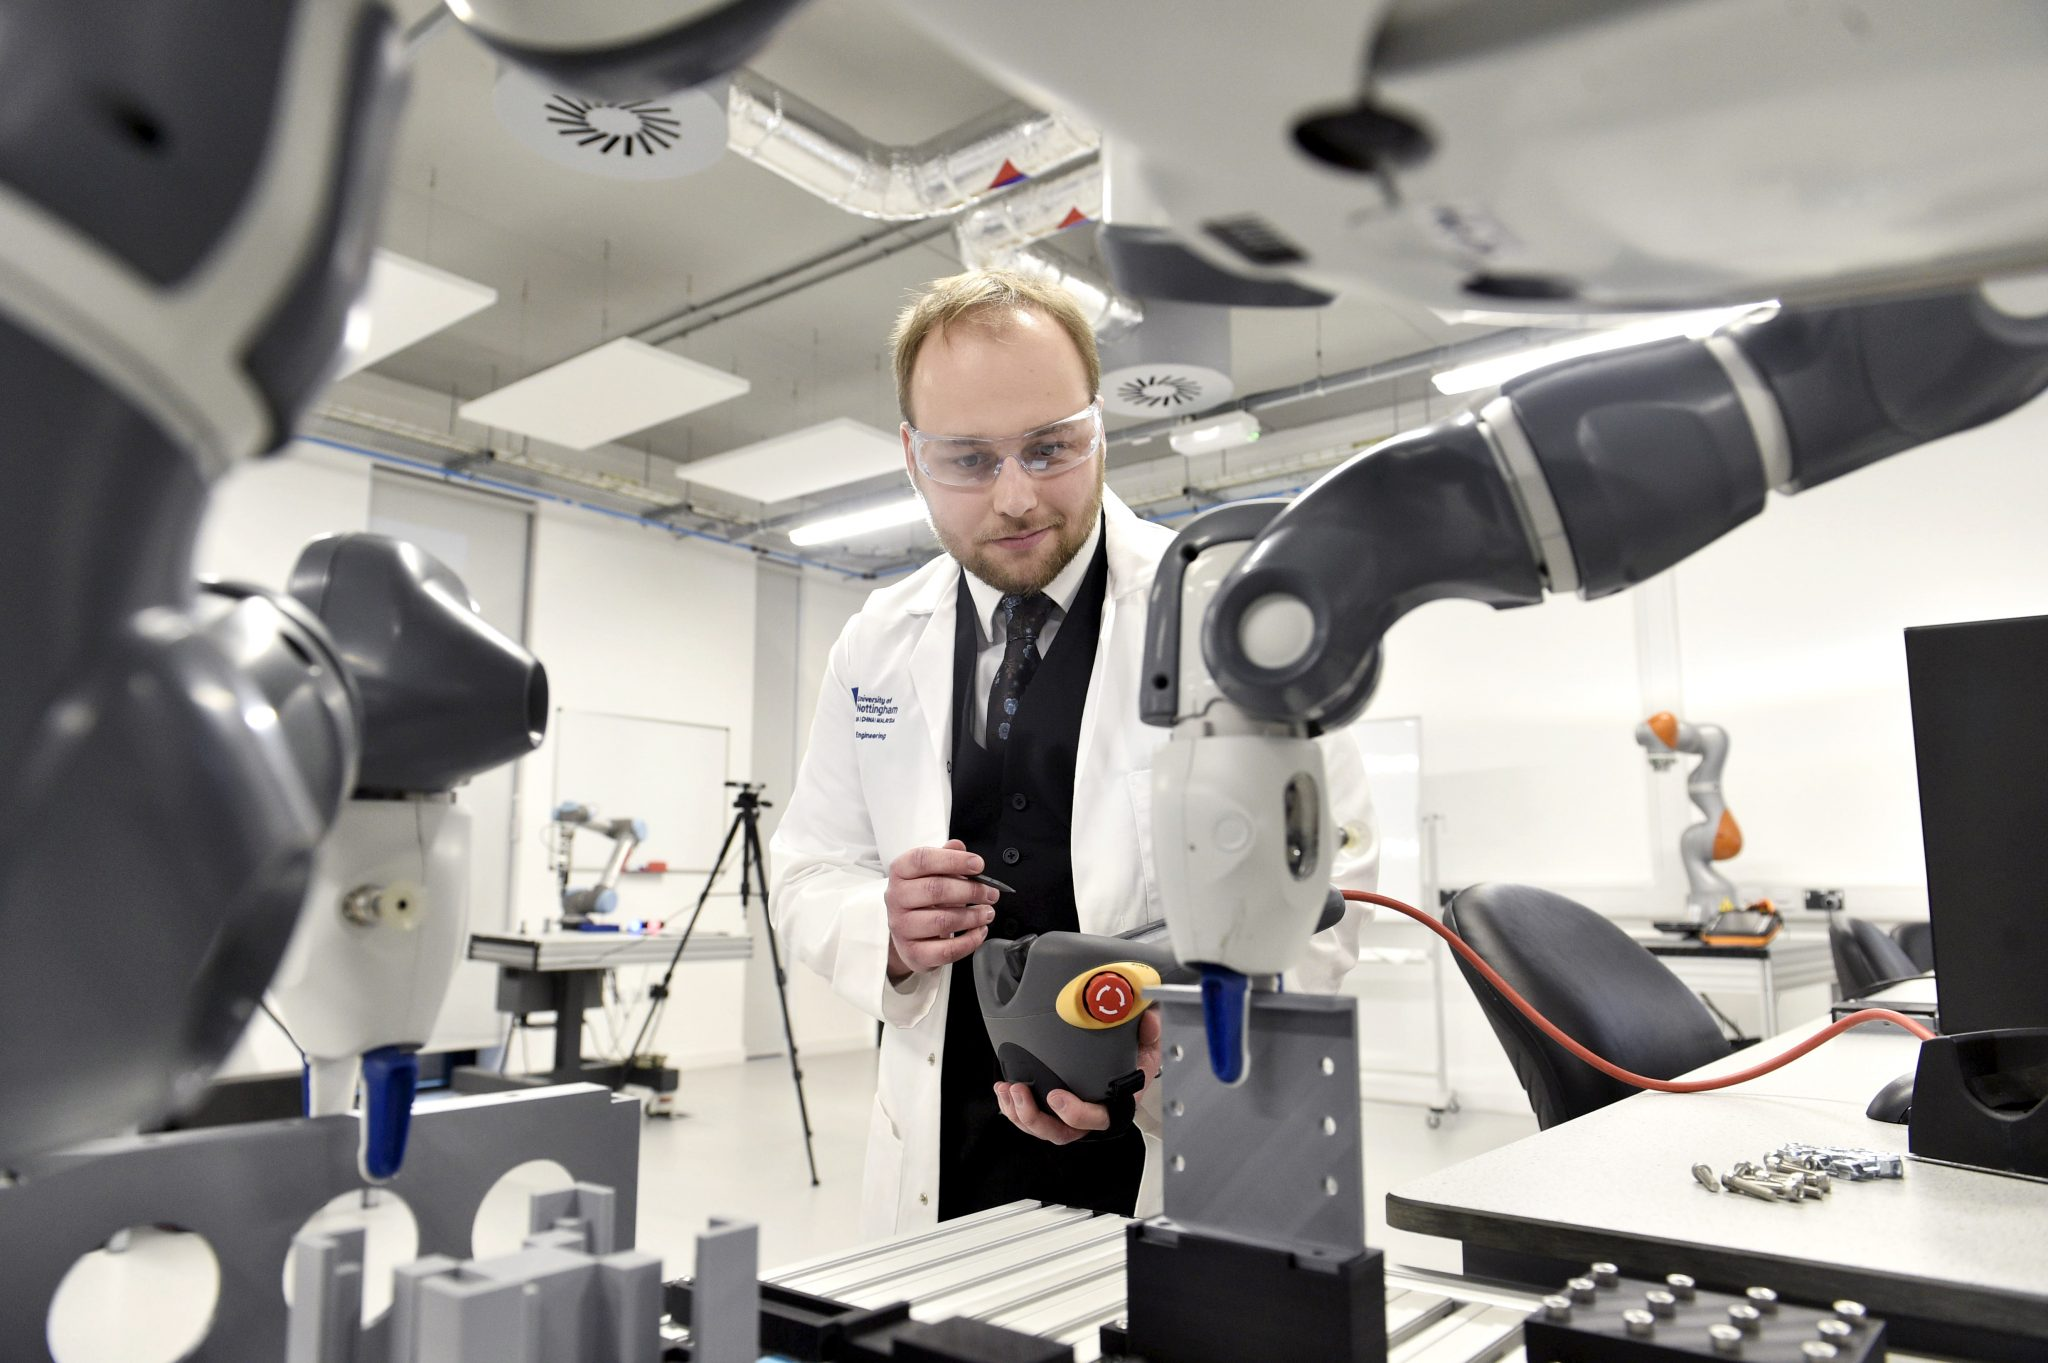 Researcher in the Nottingham Advanced Robotics Laboratory. Photo via the University of Nottingham.